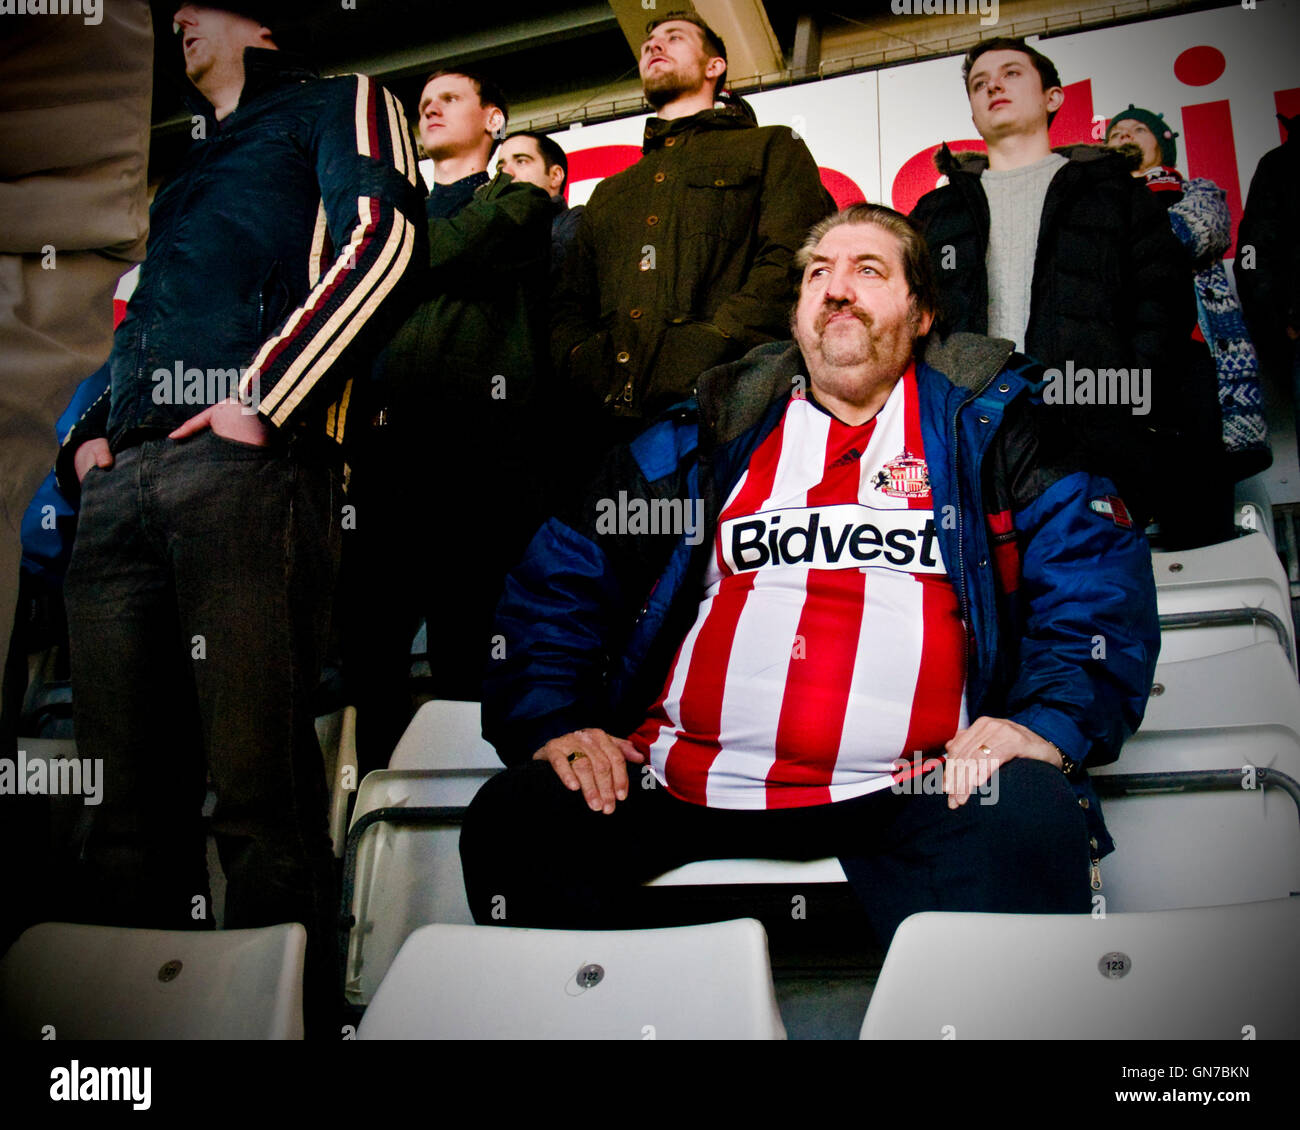 A Sunderland fan watches his team play at Swansea City - Stock Image